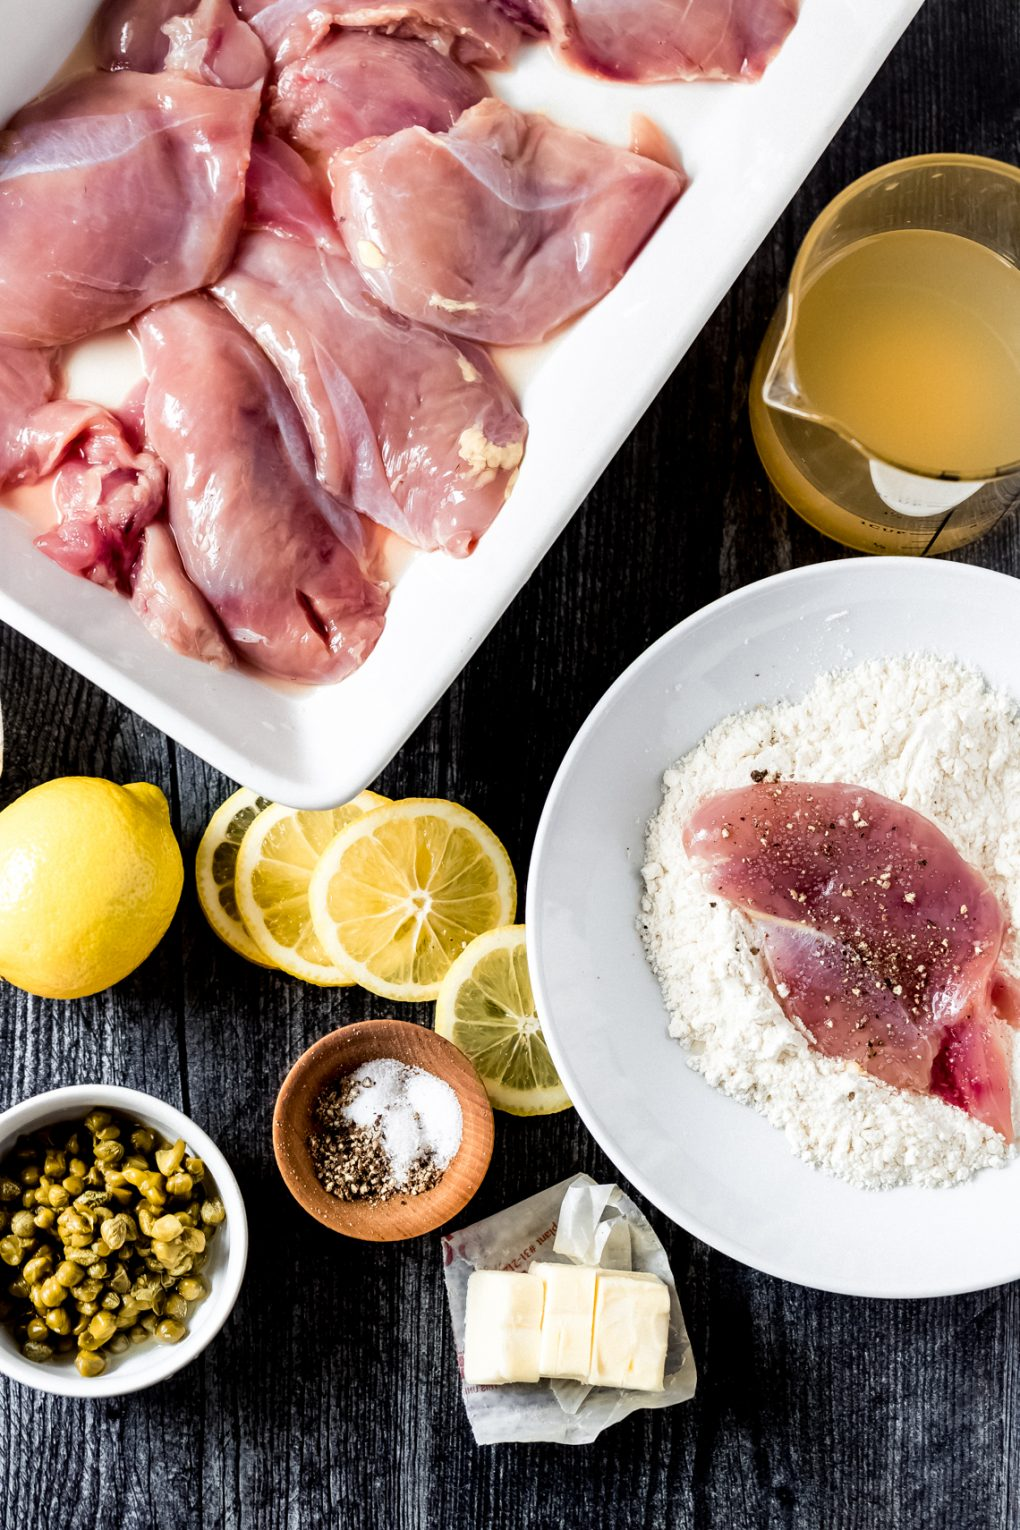 ingredients for pheasant piccata on a table